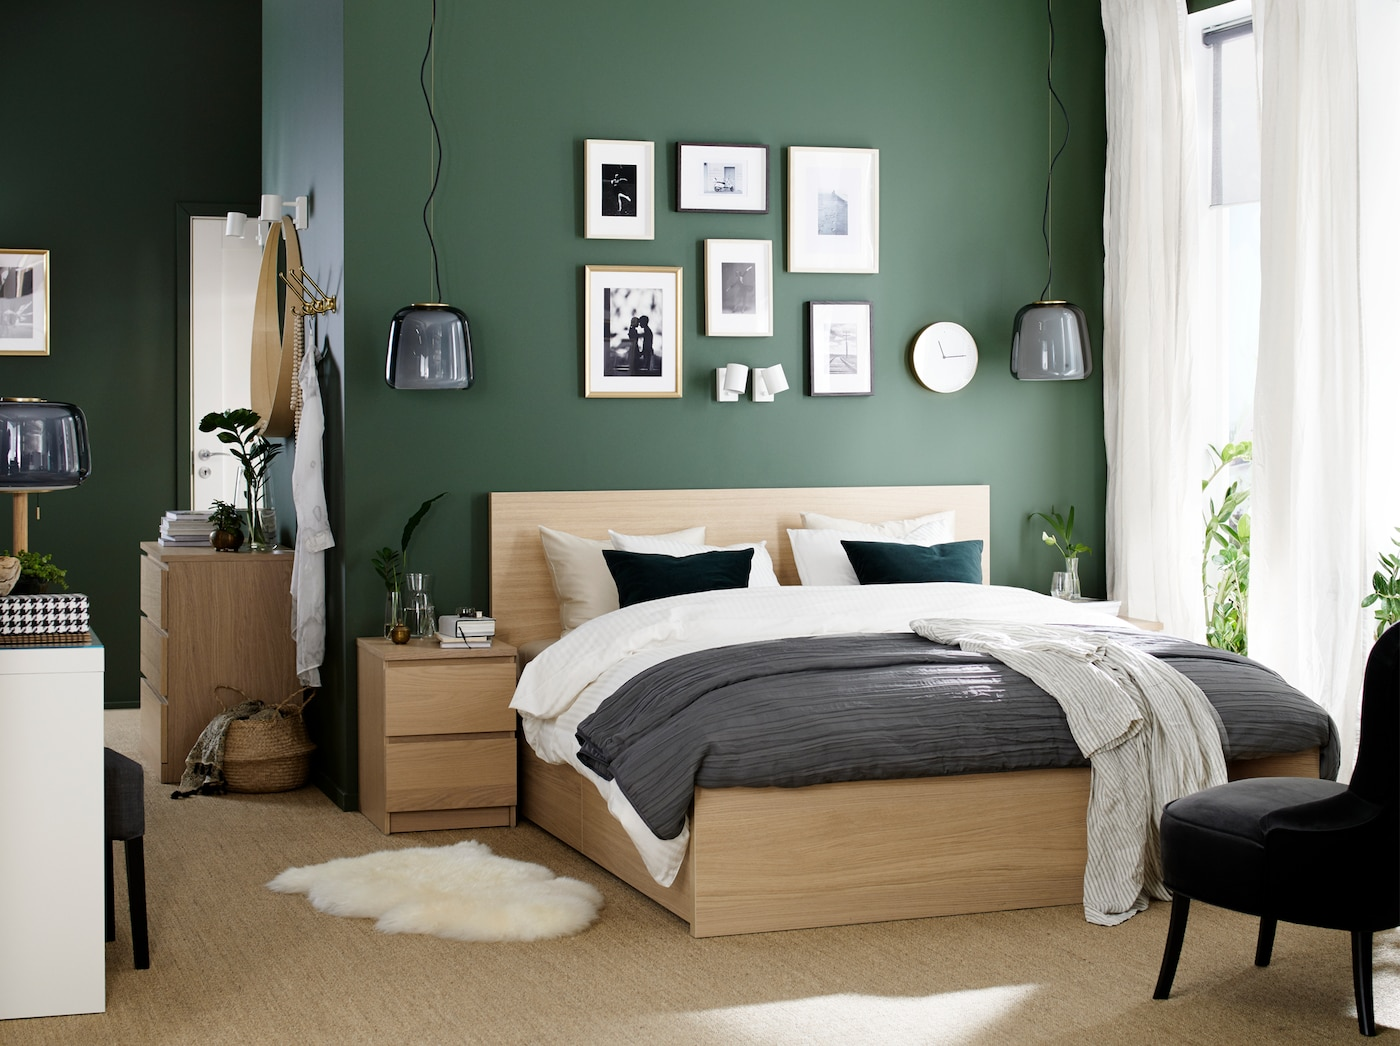 A bedroom with a bed frame and bedside table in white stained oak veneer, a white dressing table and a grey armchair.